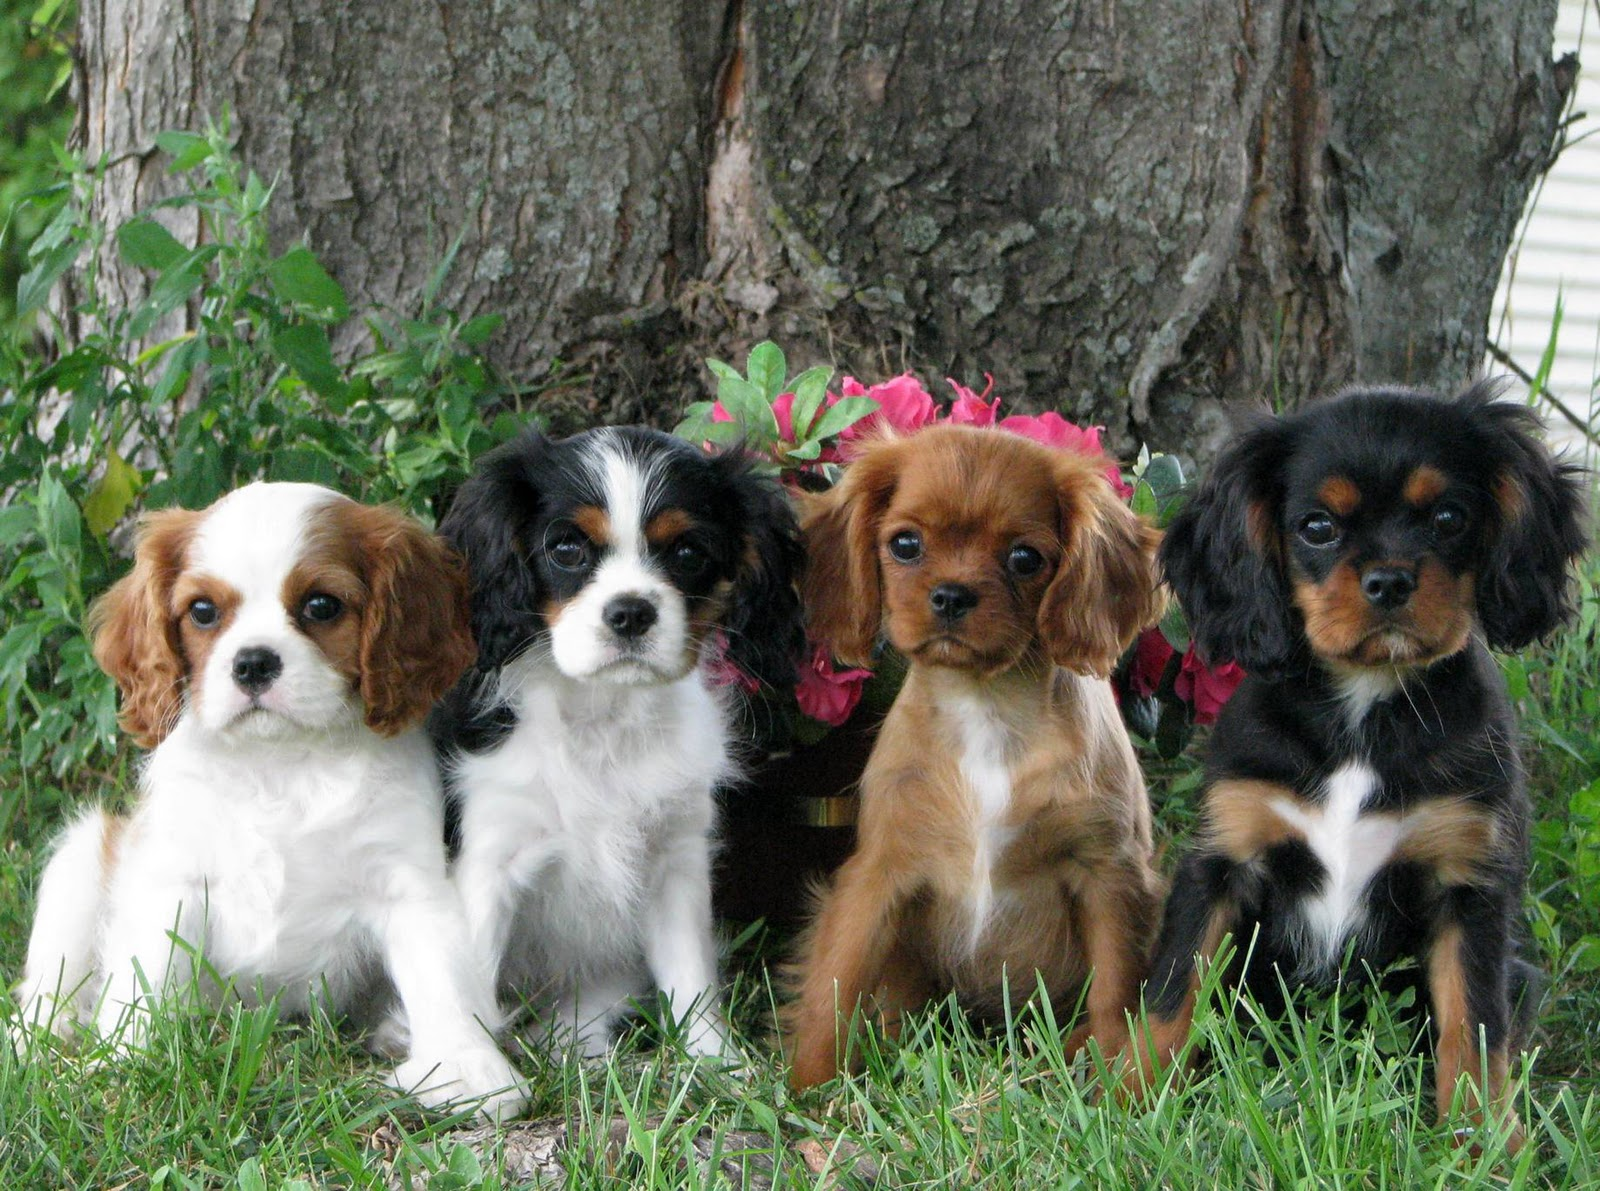 King Charles Spaniel Puppies: King Cavalier King Charles Spaniel Puppies Breed